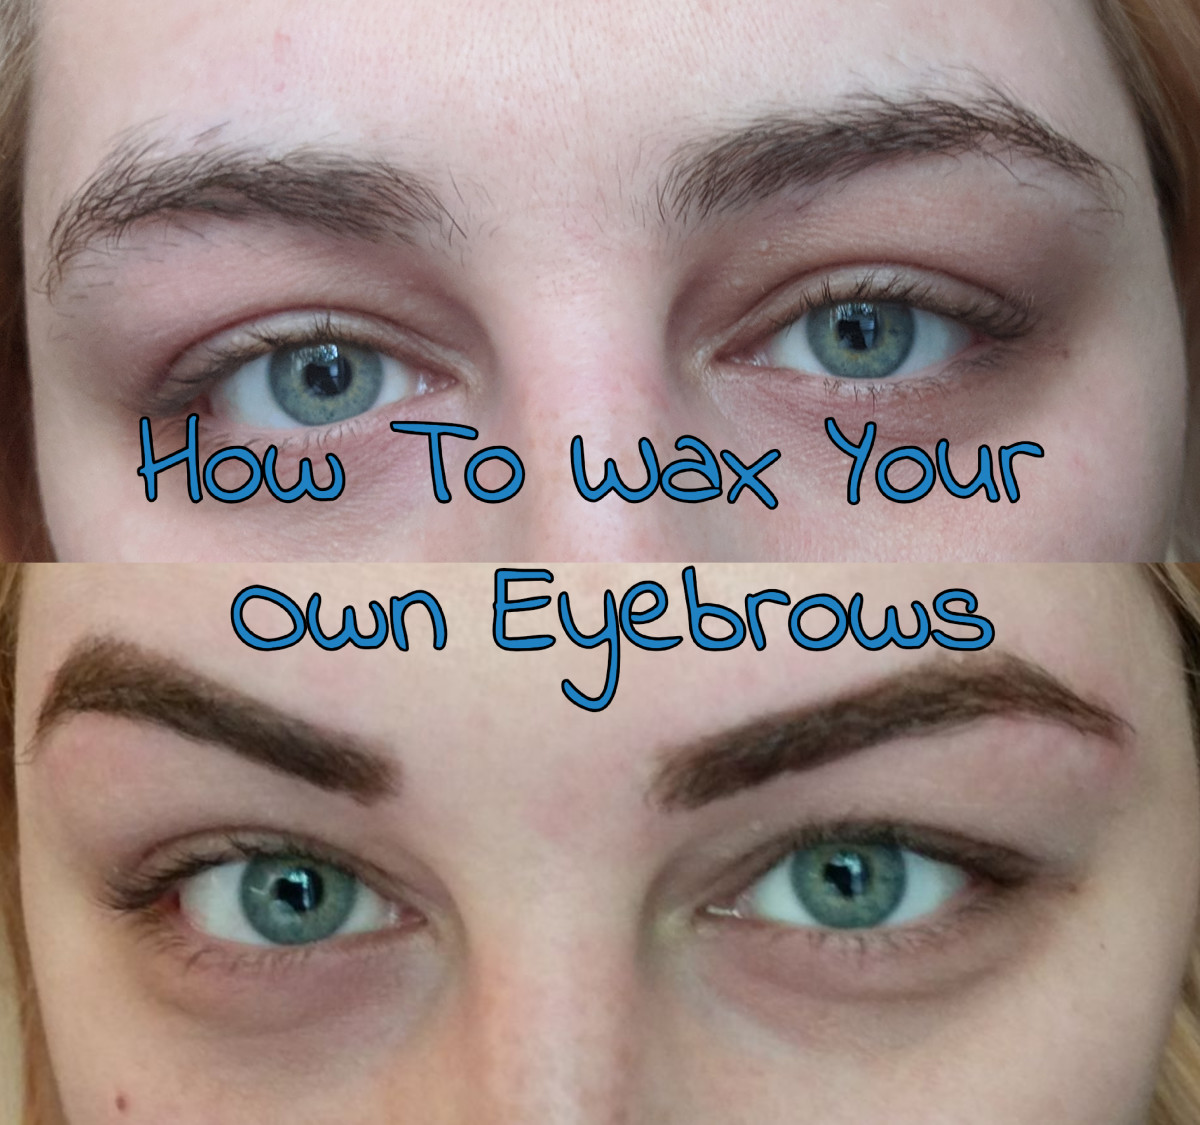 How to Wax Your Own Eyebrows Using Sally Hansen All Over Body Wax Kit